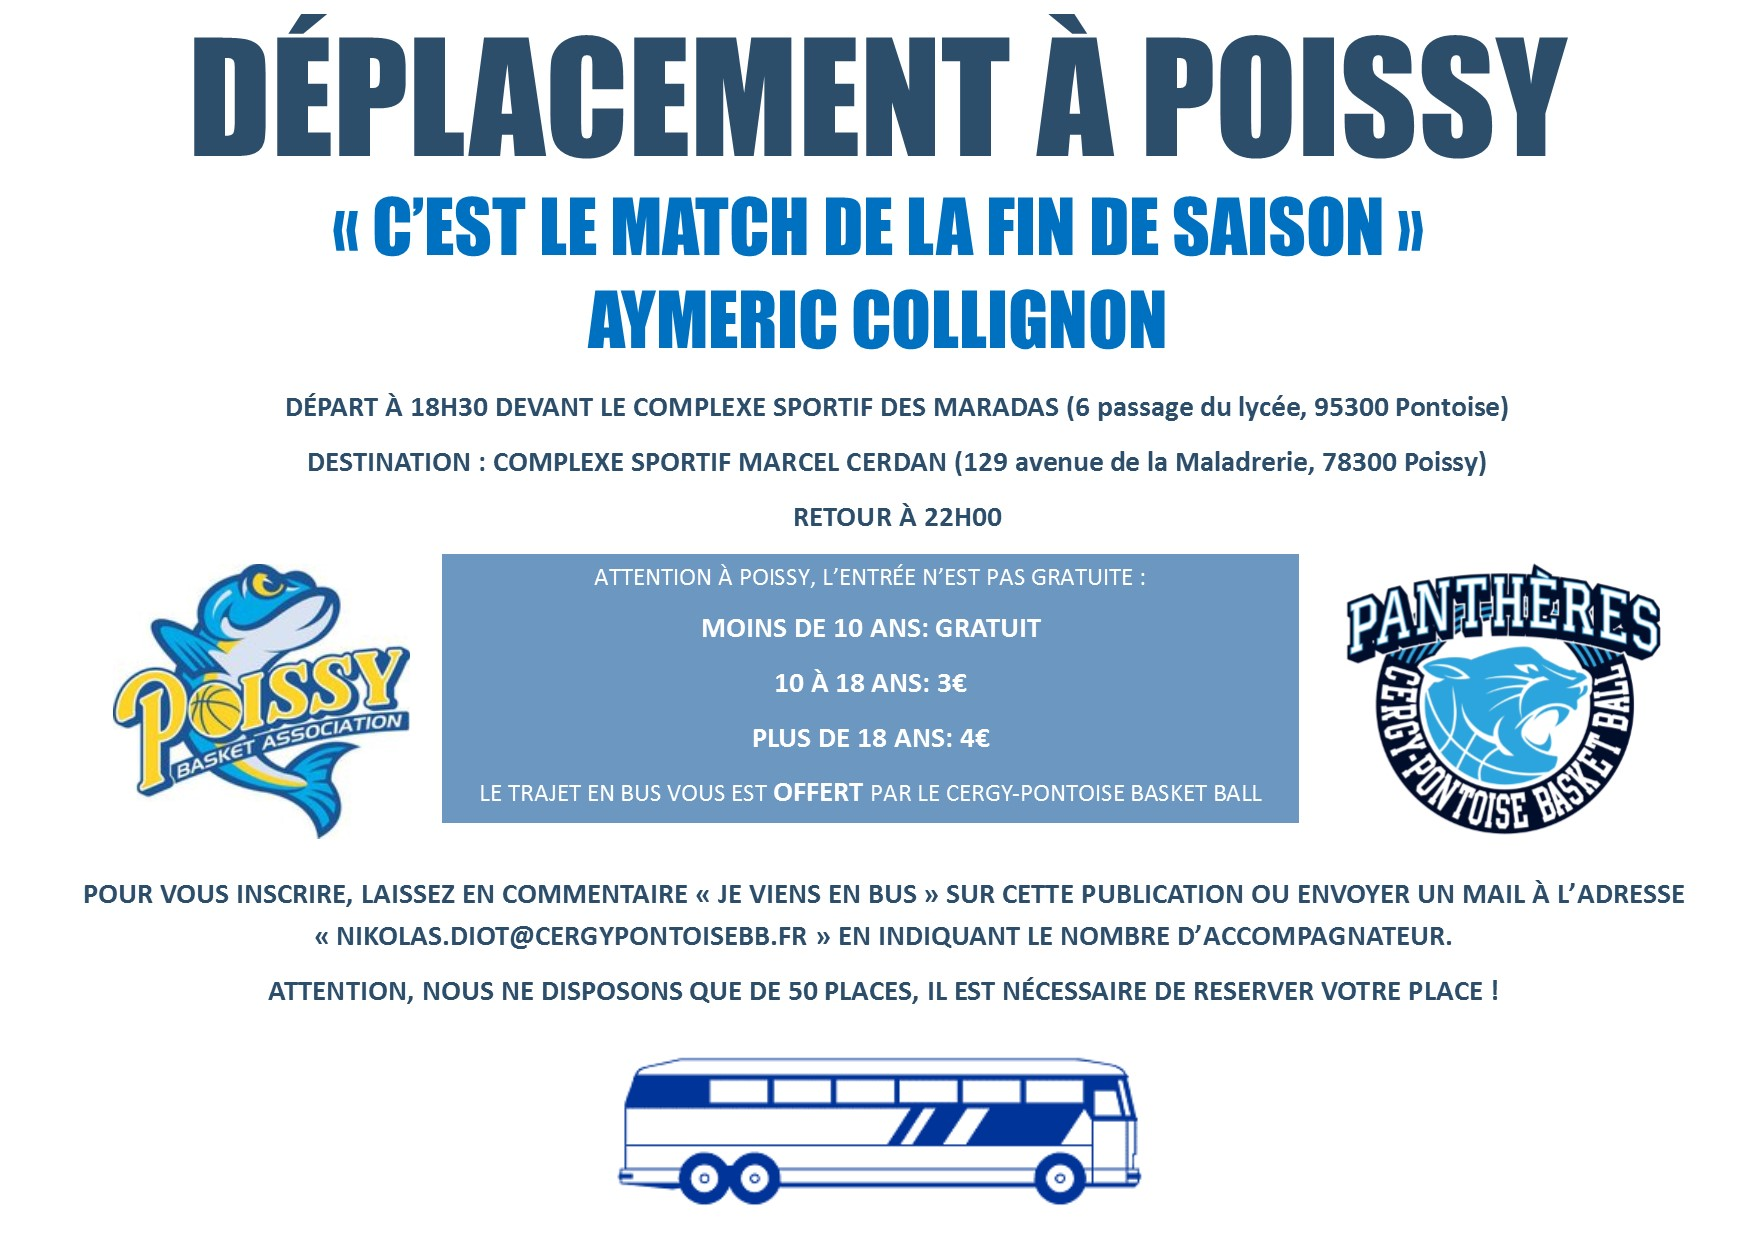 DEPLACEMENT POISSY